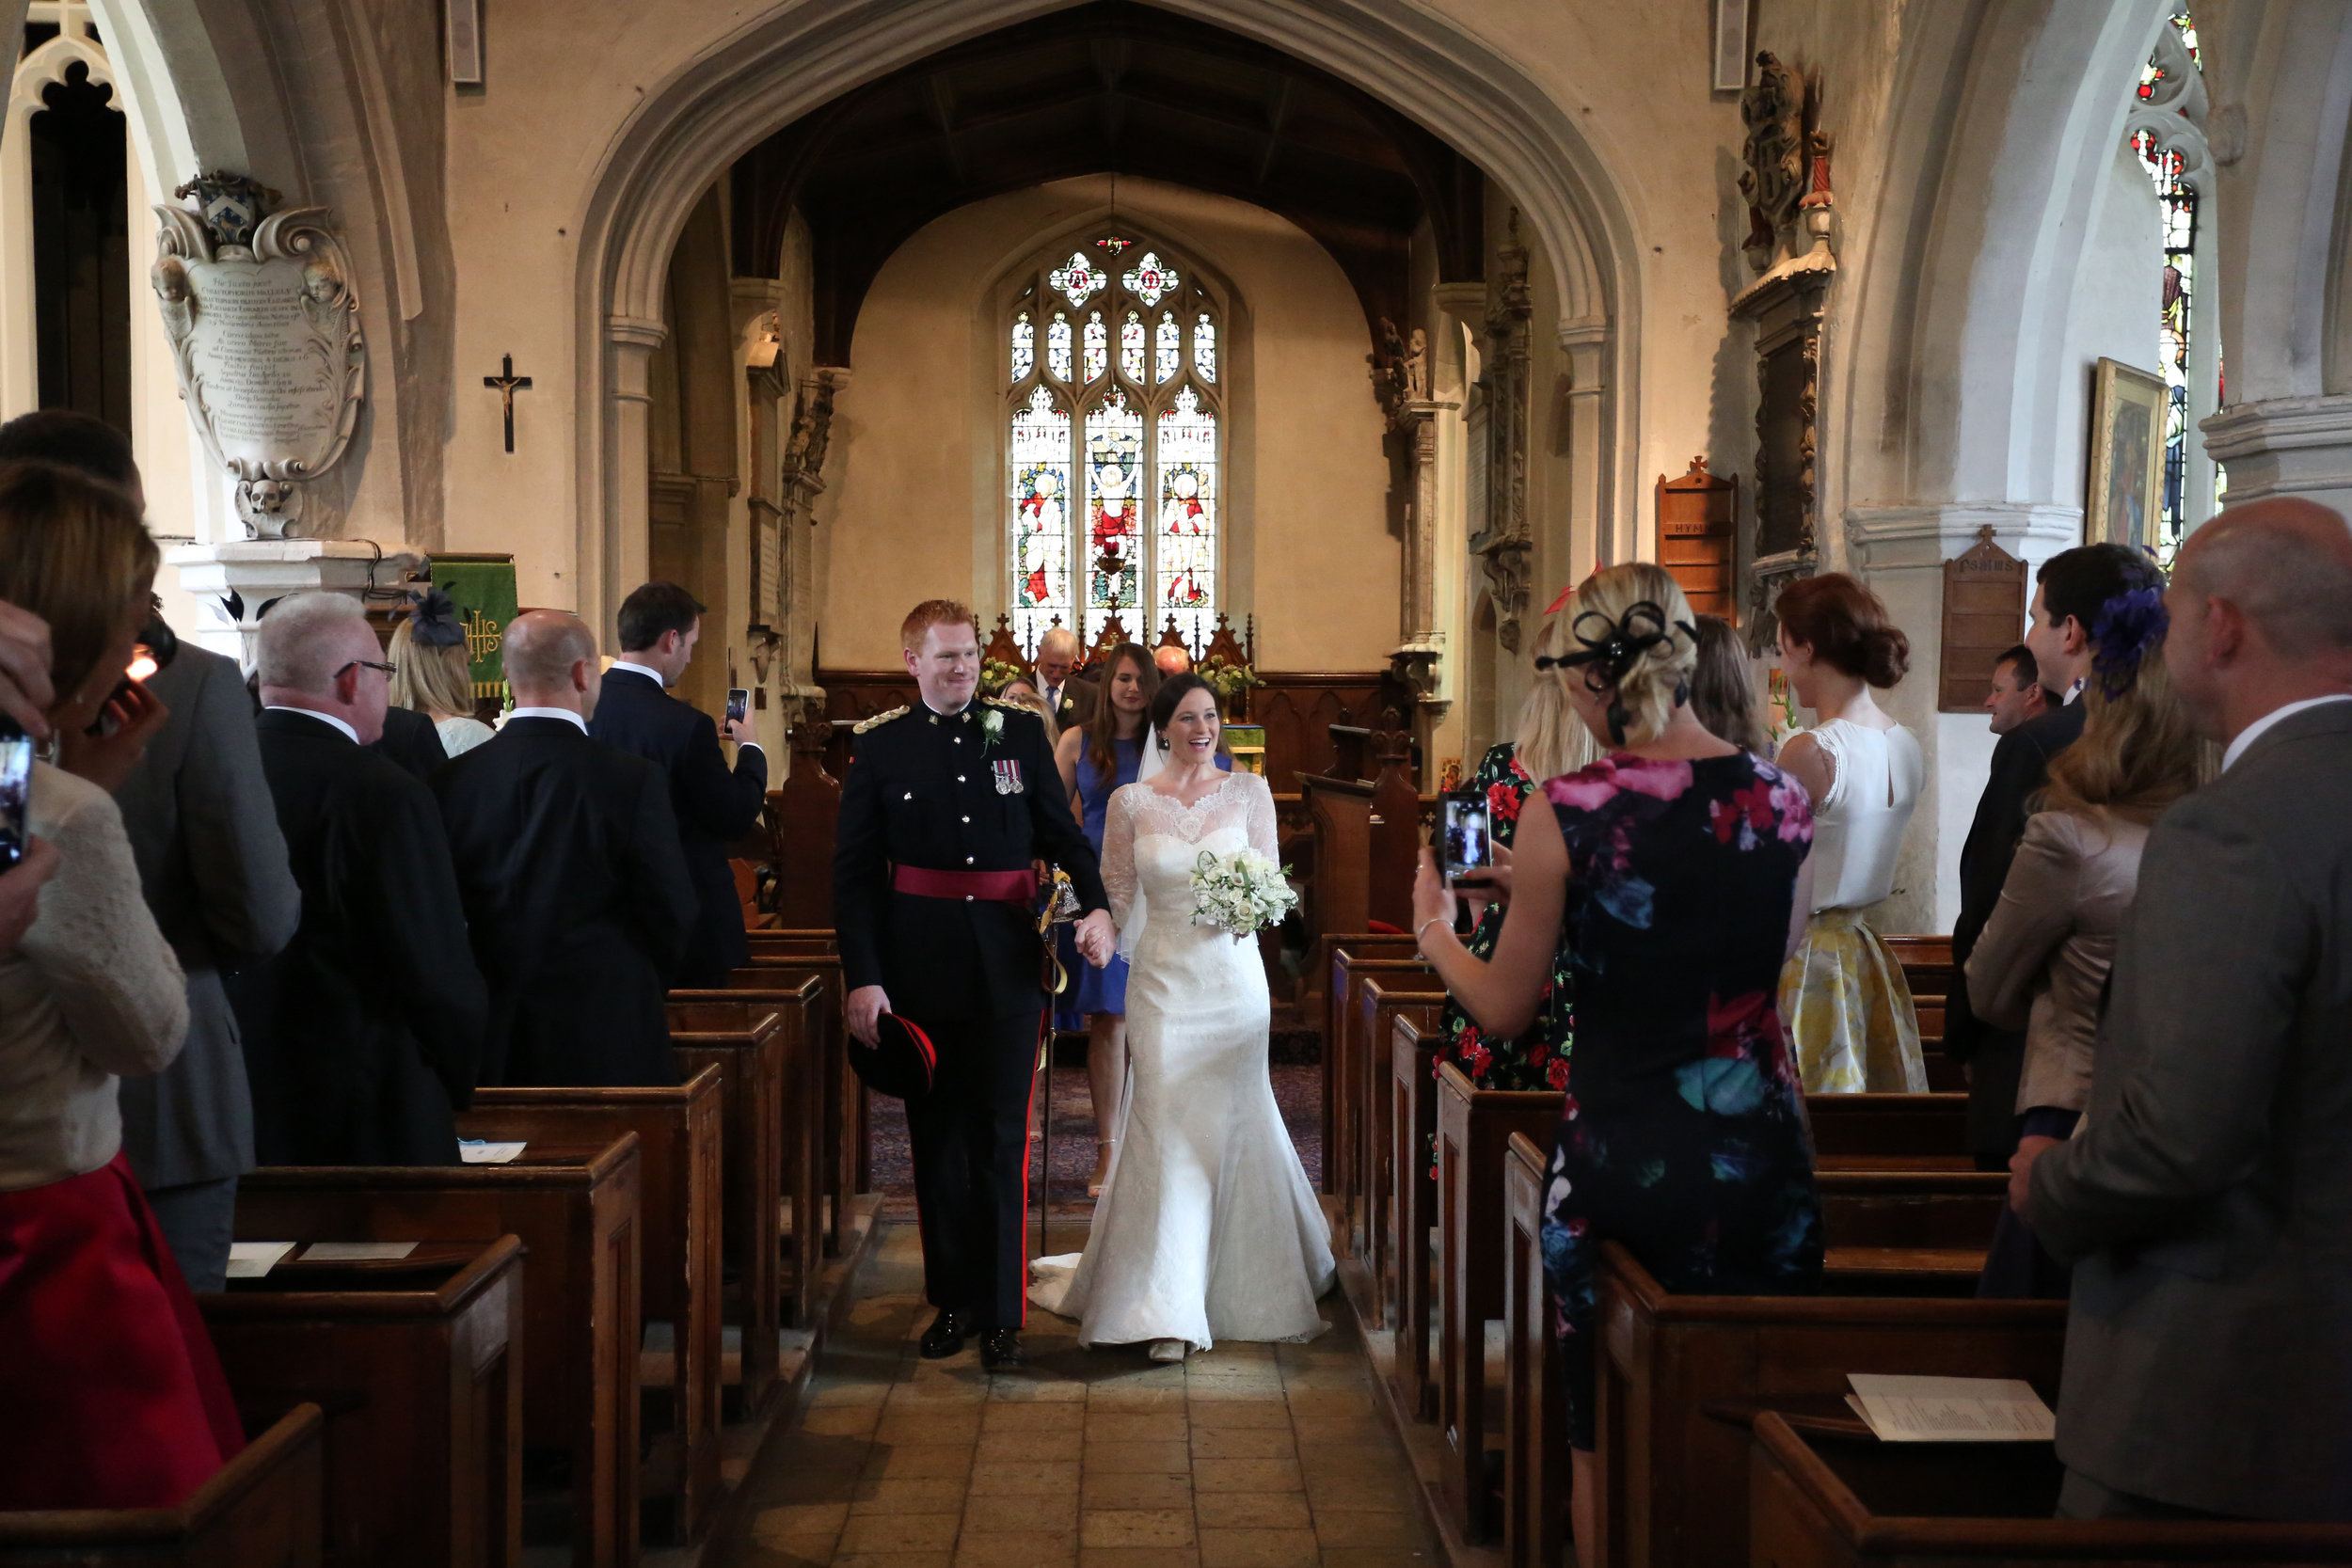 JELLYFISH WEDDING PHOTOGRAPHY ST MARY'S CHURCH HENLOW (27).jpg